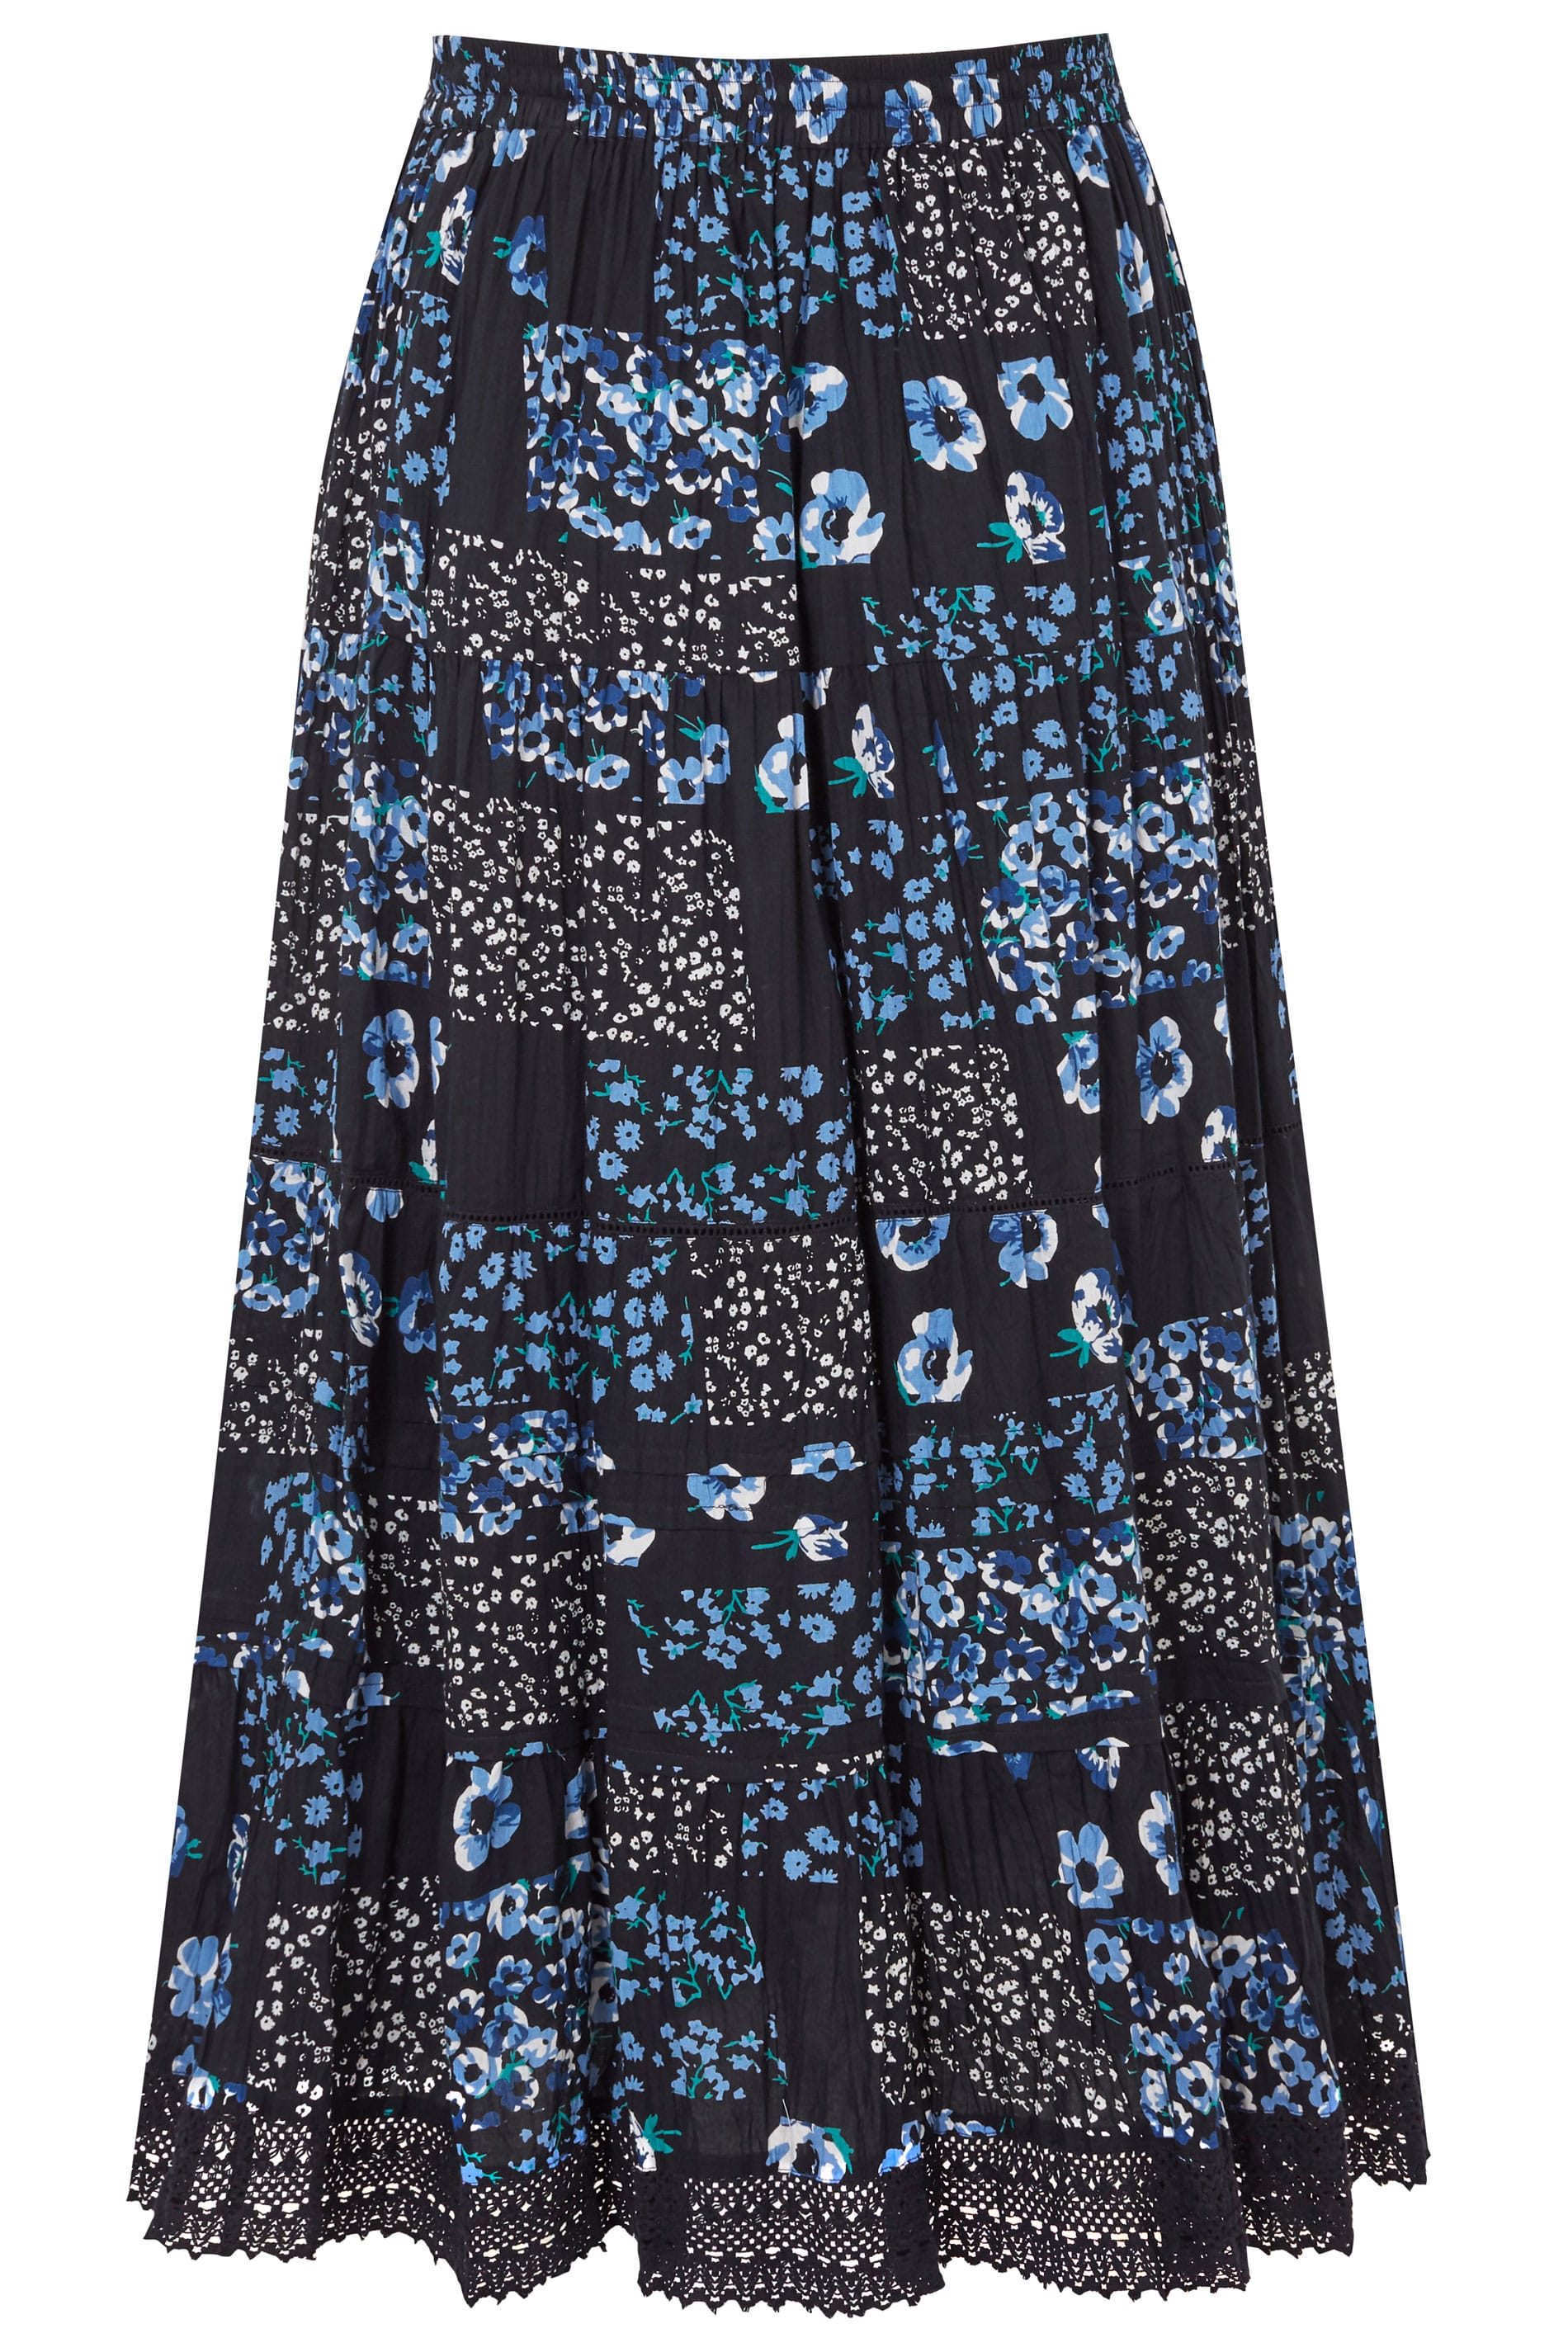 7572bebb0 Navy Floral Print Tiered Maxi Skirt With Lace Trim Hem, plus size 16 ...